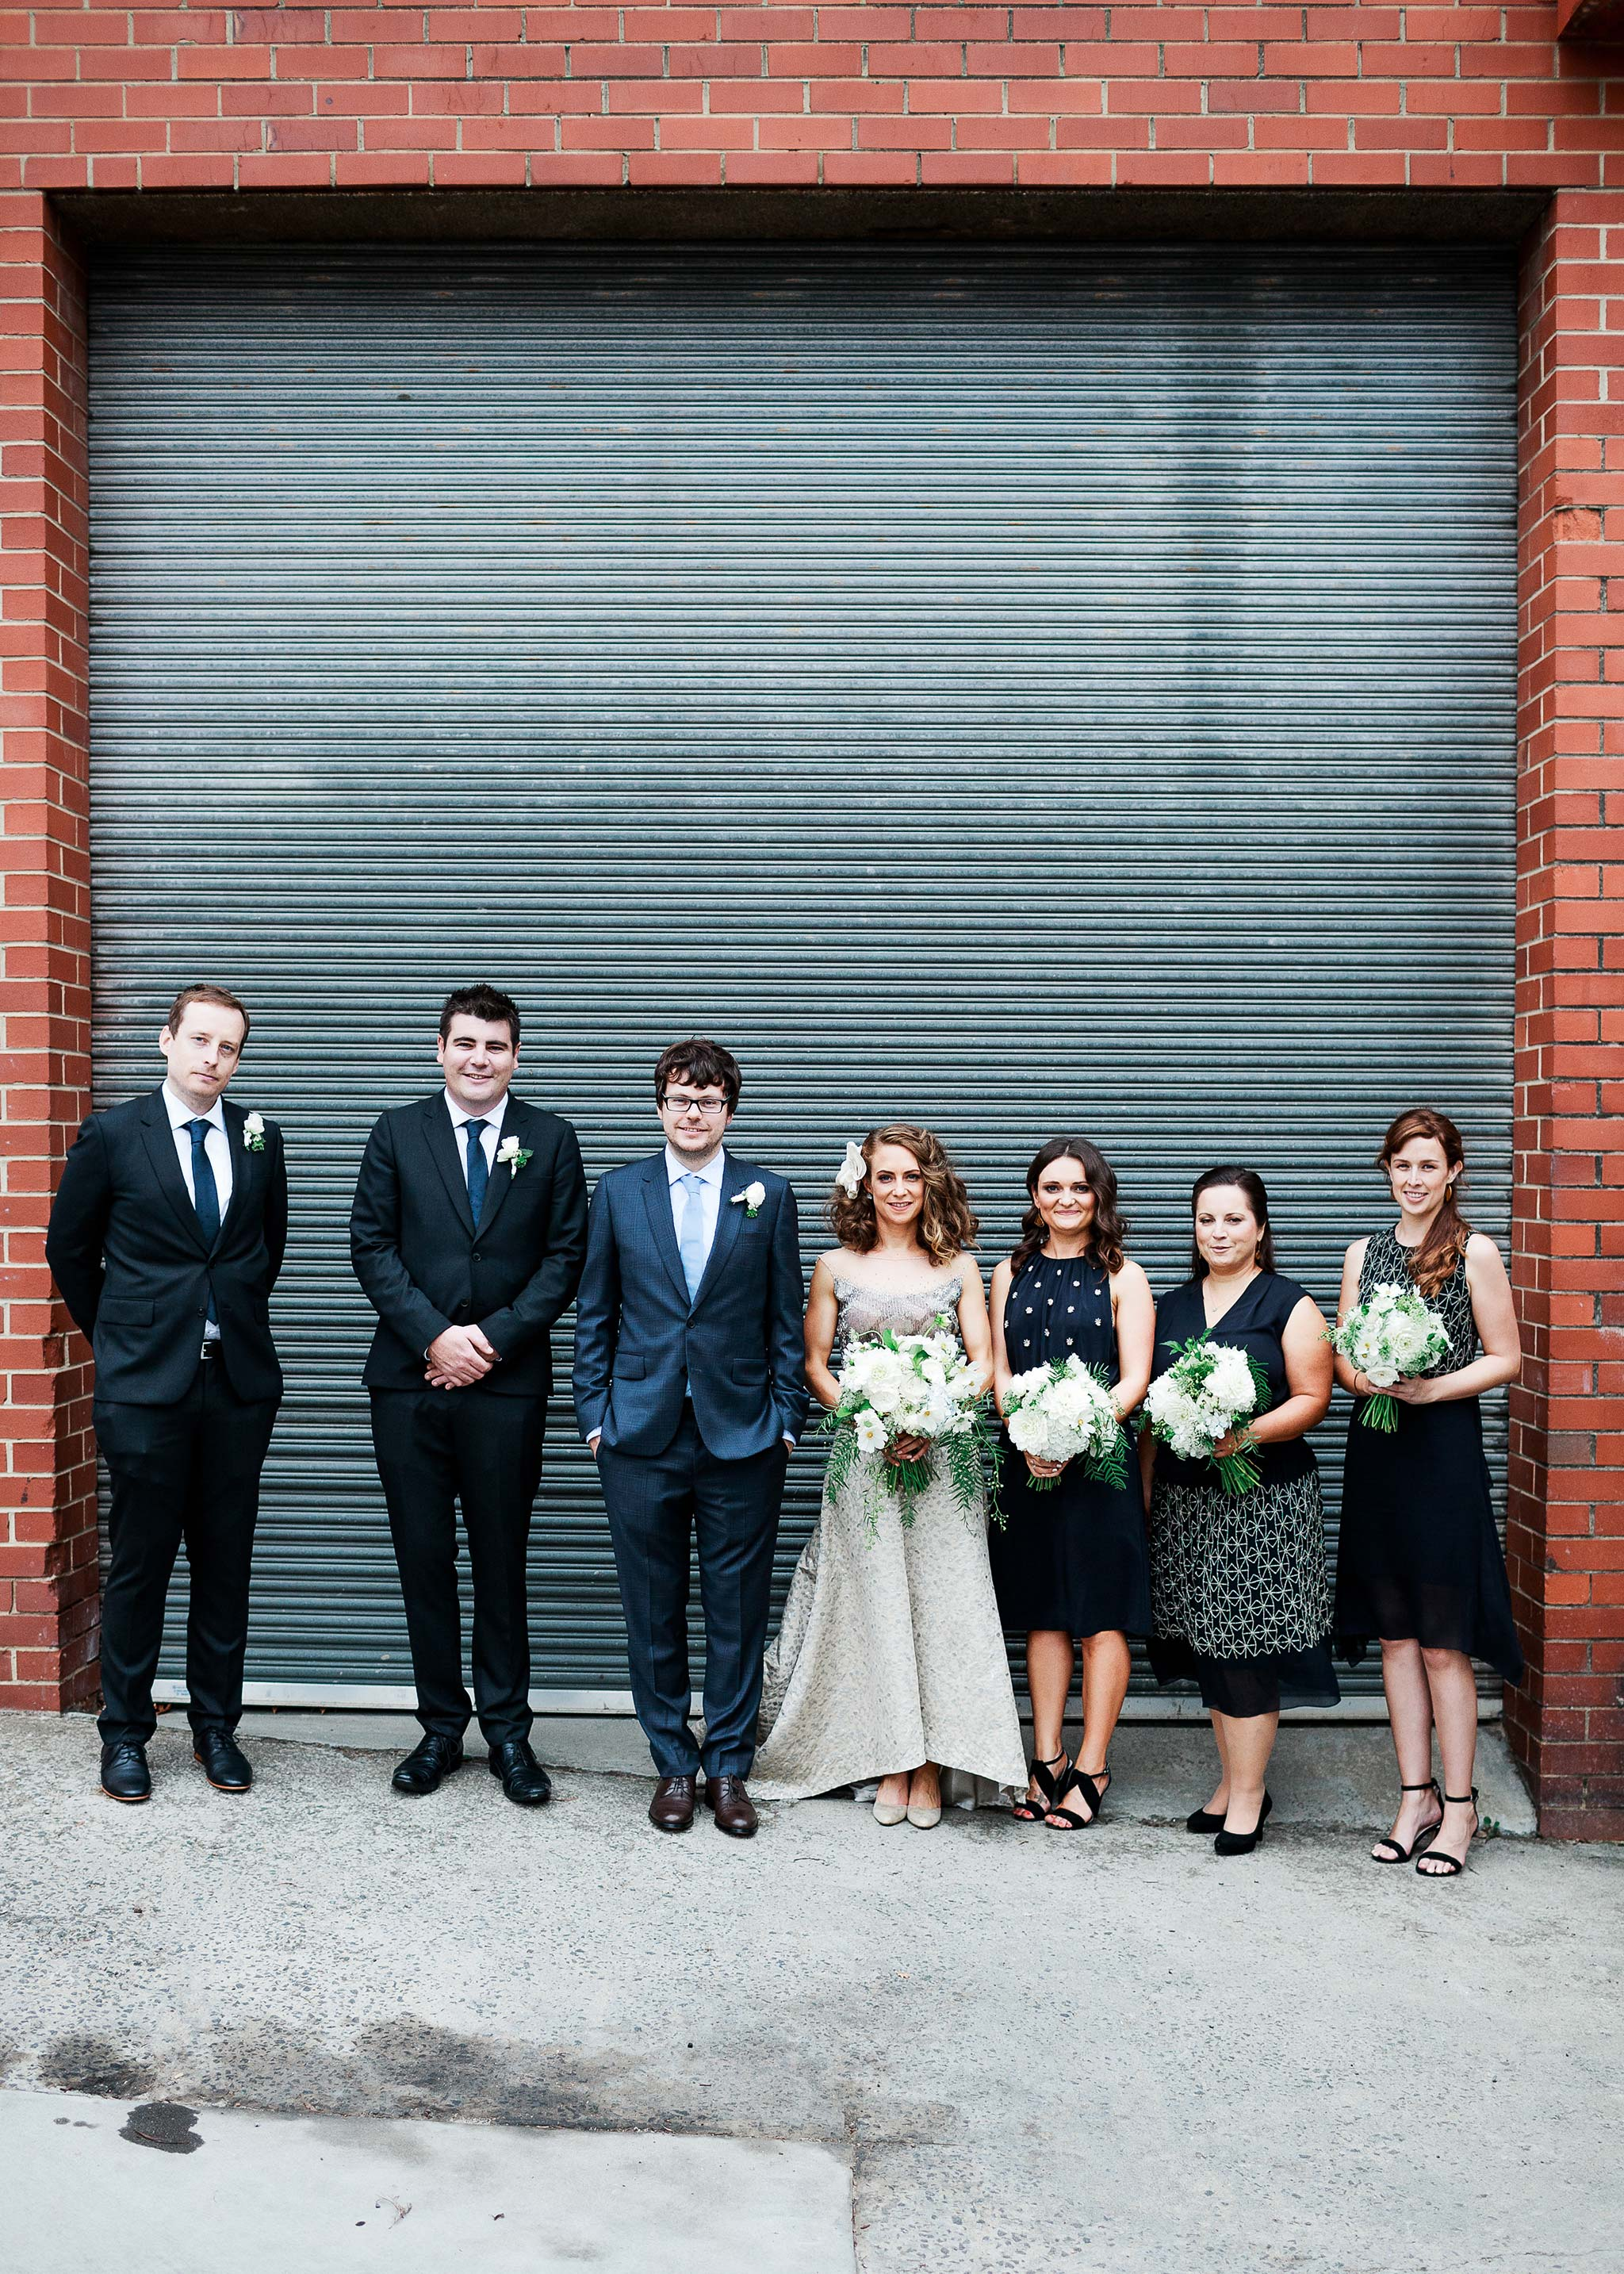 North-Melbourne-Wedding-Photographer-group-photo-alley